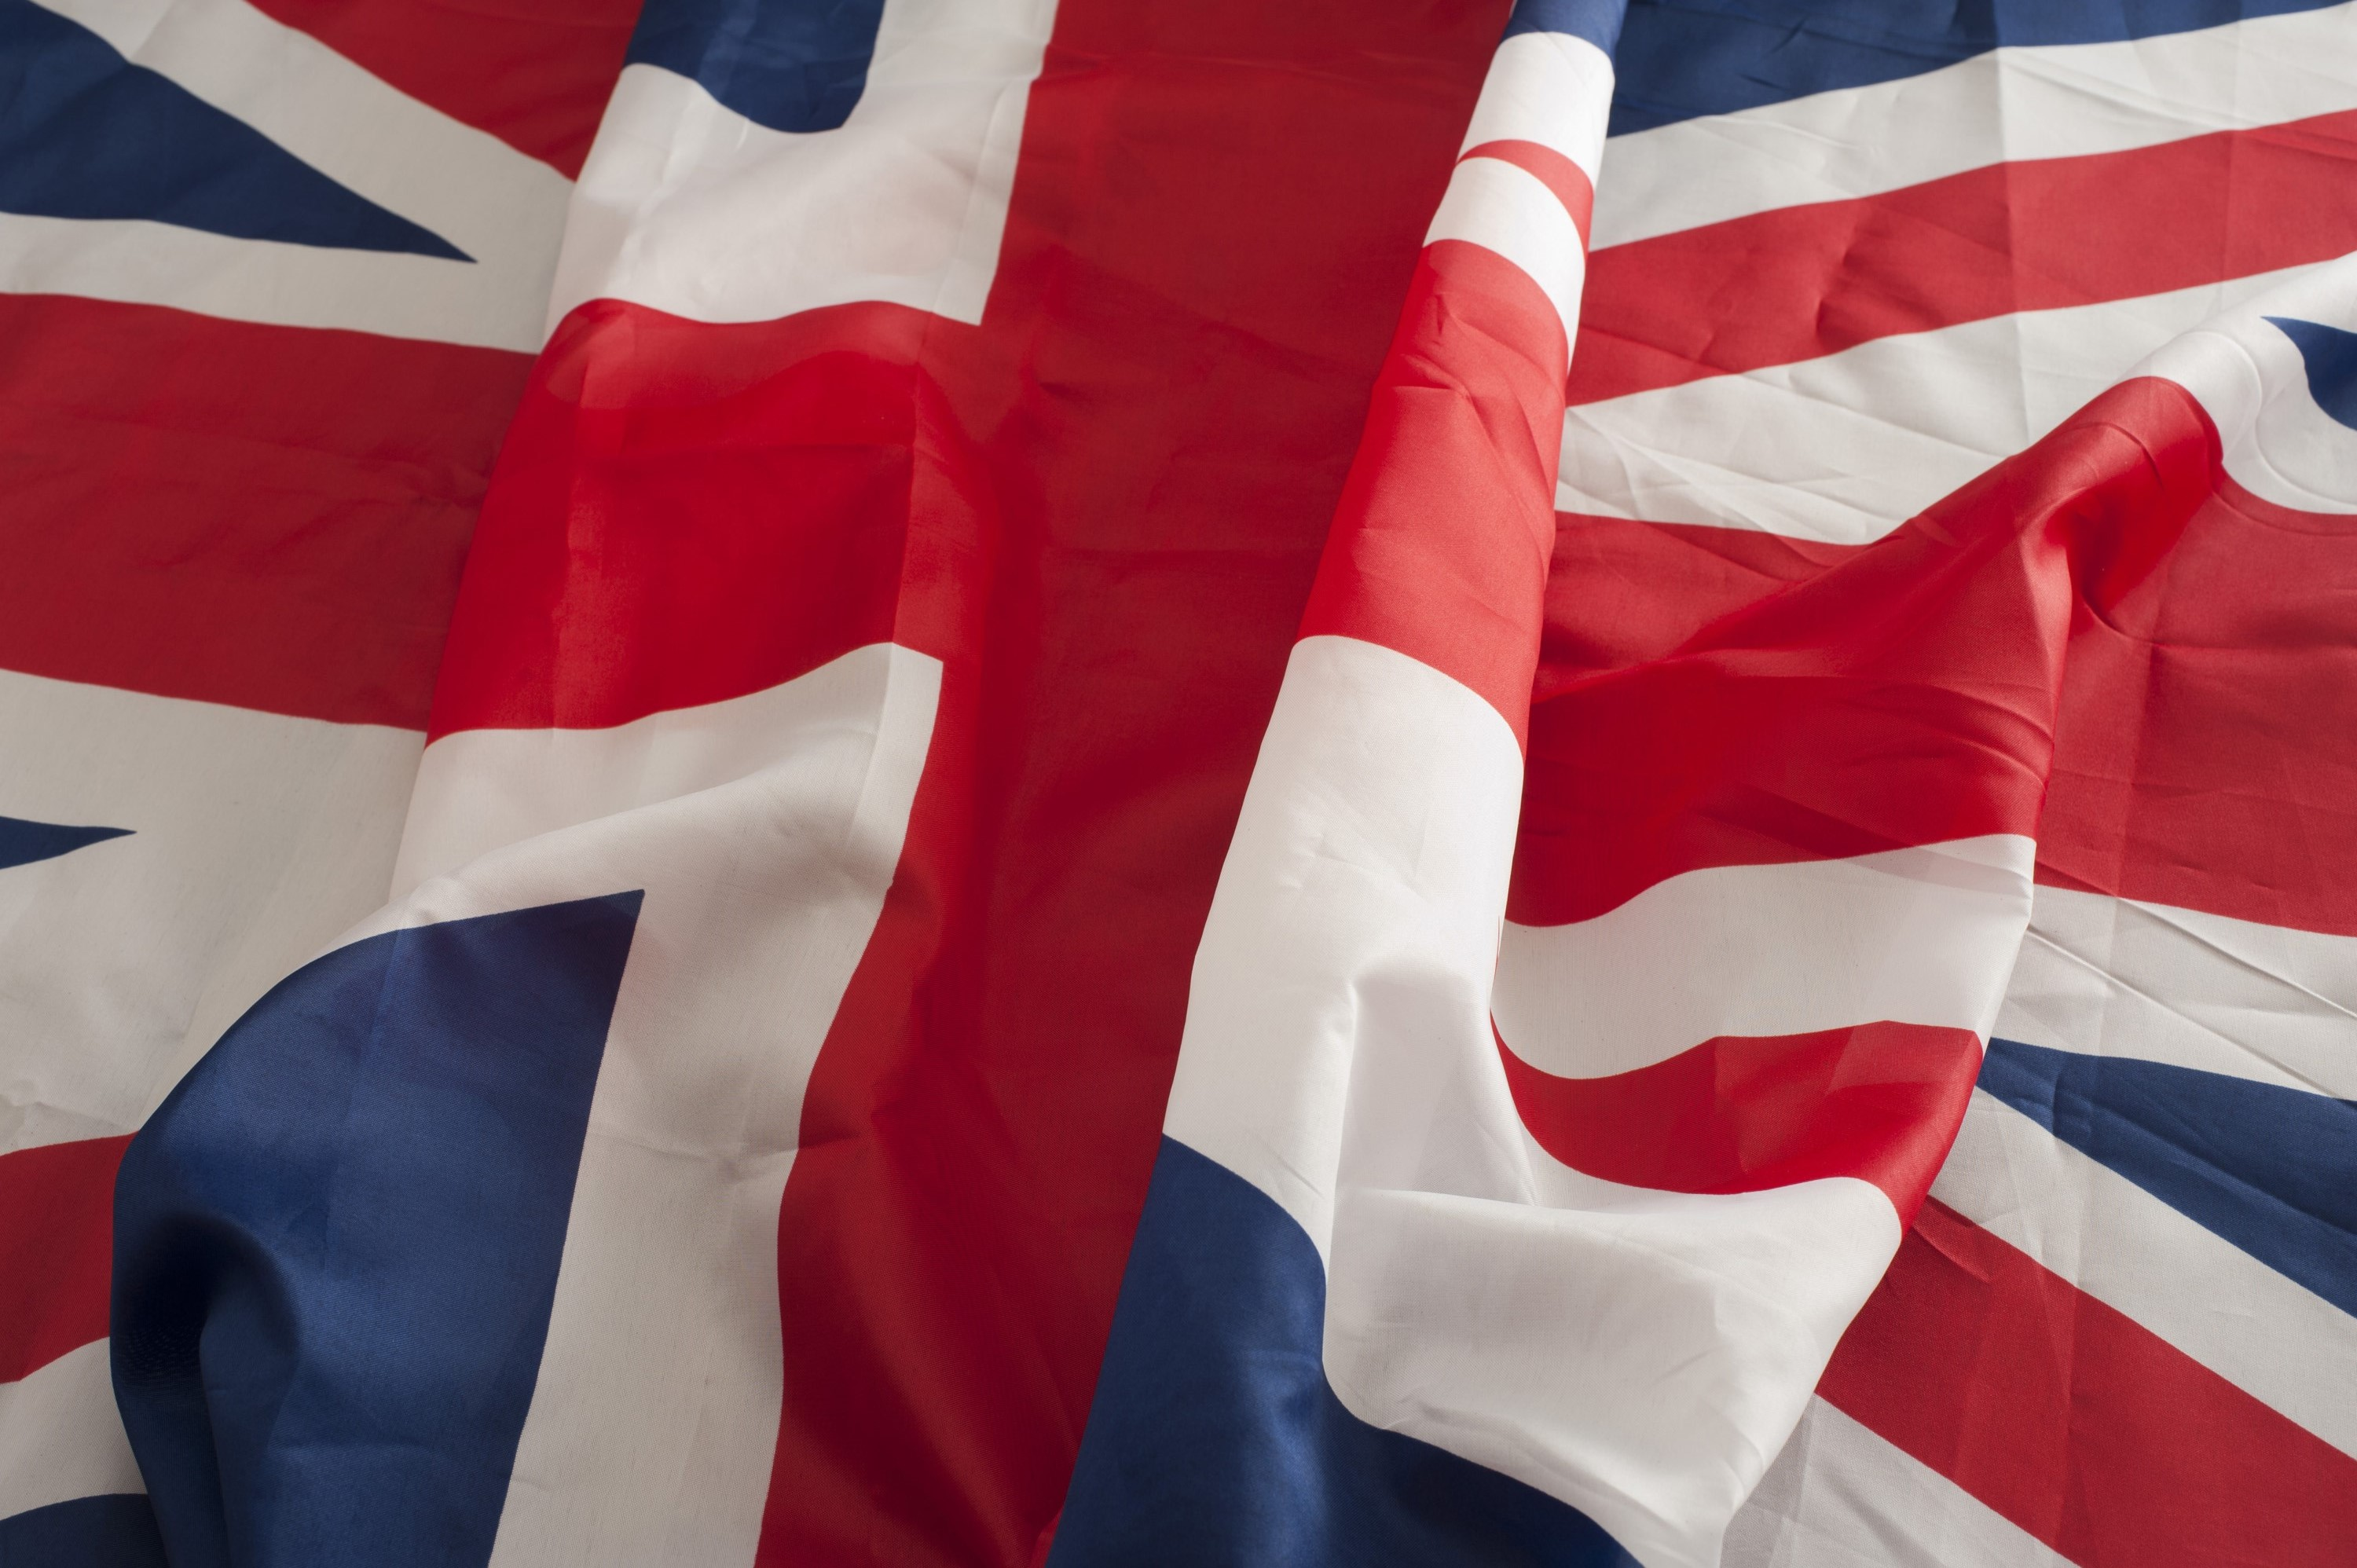 free image of waving national flag of the united kingdom